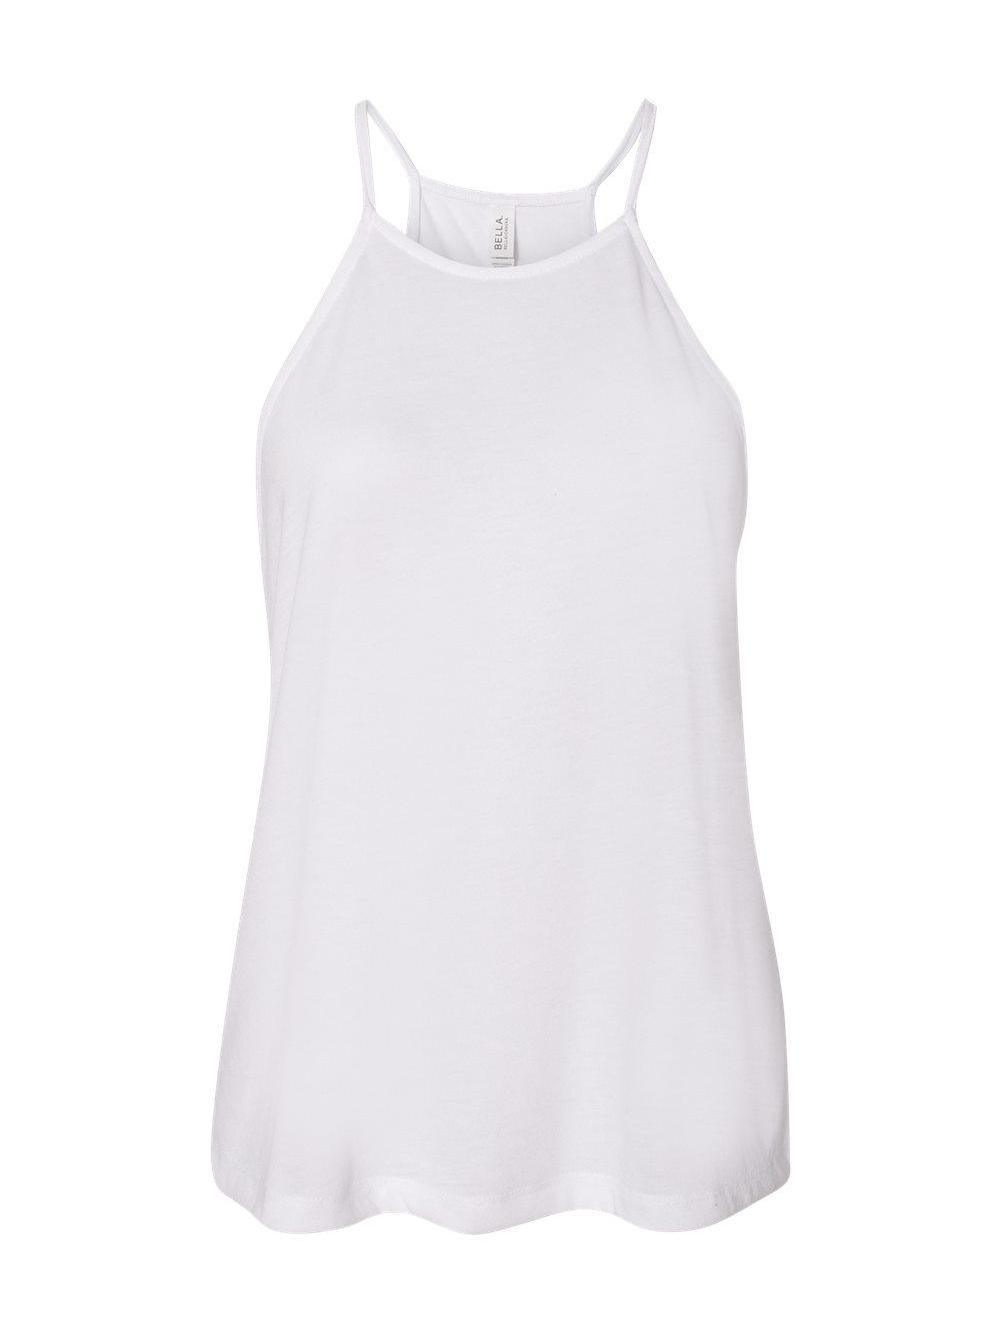 Bella-Canvas-Women-039-s-Flowy-High-Neck-Tank-8809 thumbnail 18